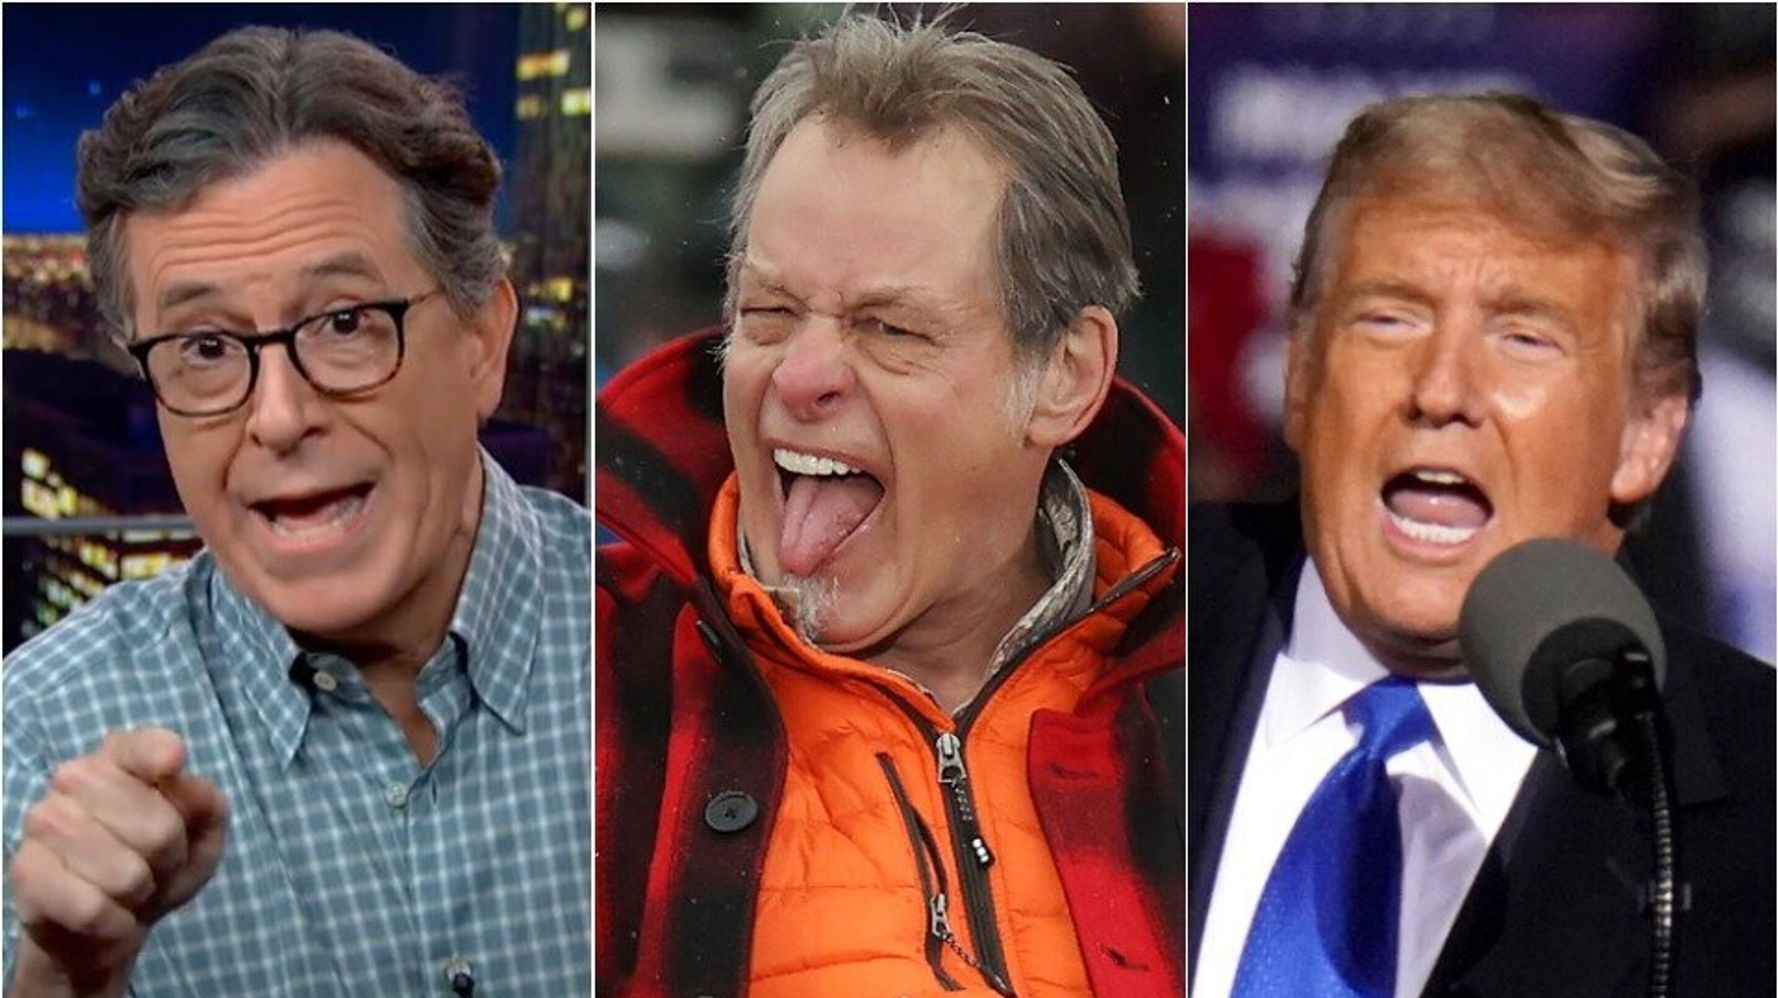 Stephen Colbert: This Trump-Ted Nugent Moment Is 'Perfect' Summary Of Where We're At